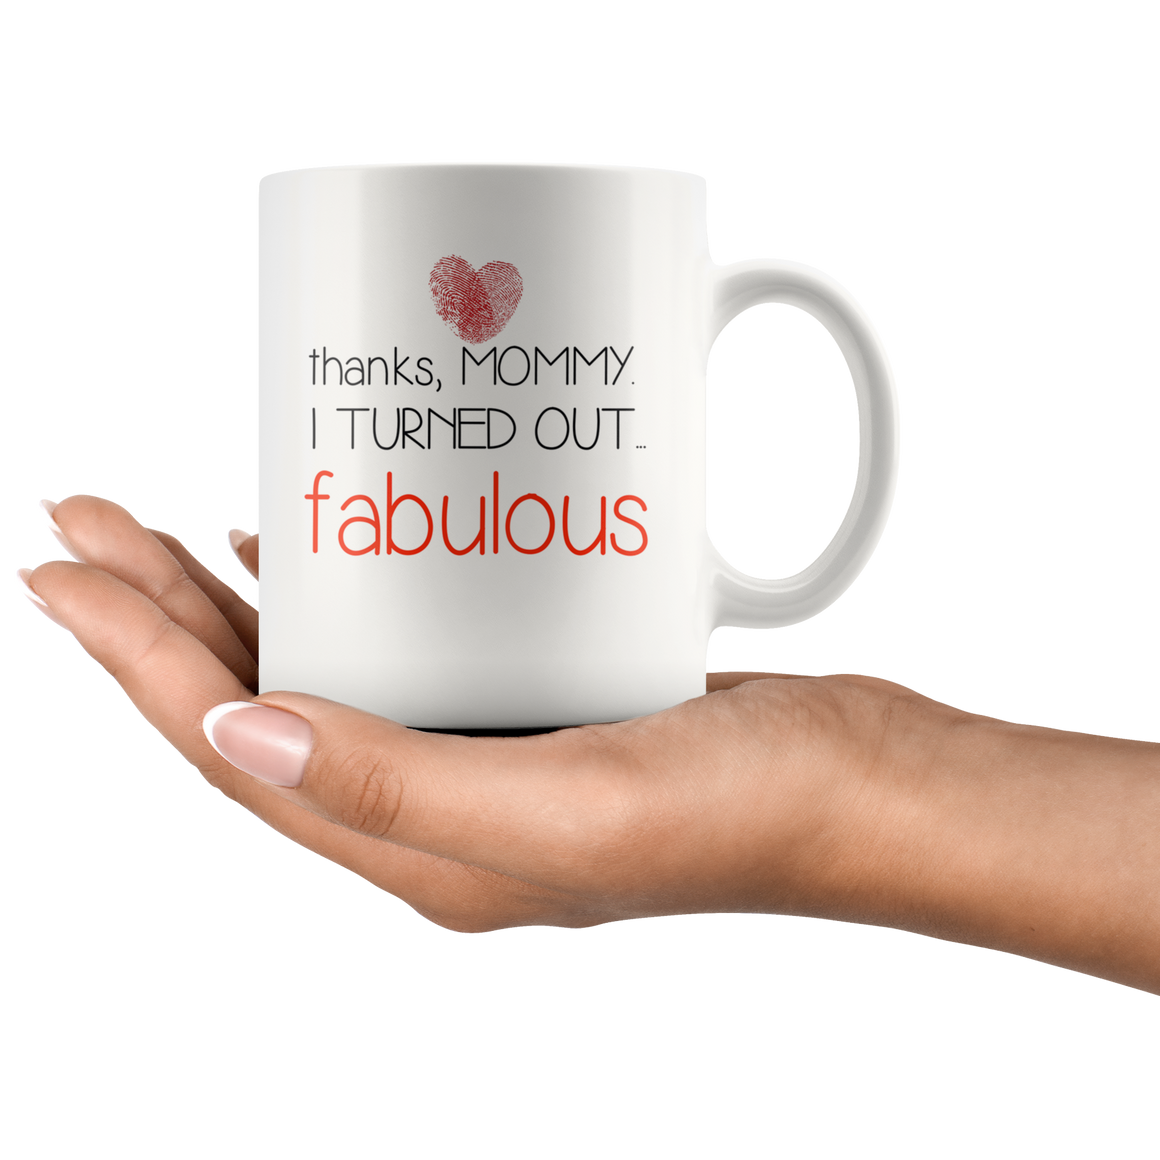 Thanks mommy I turned out fabulous coffee mug gift - mothers day gift